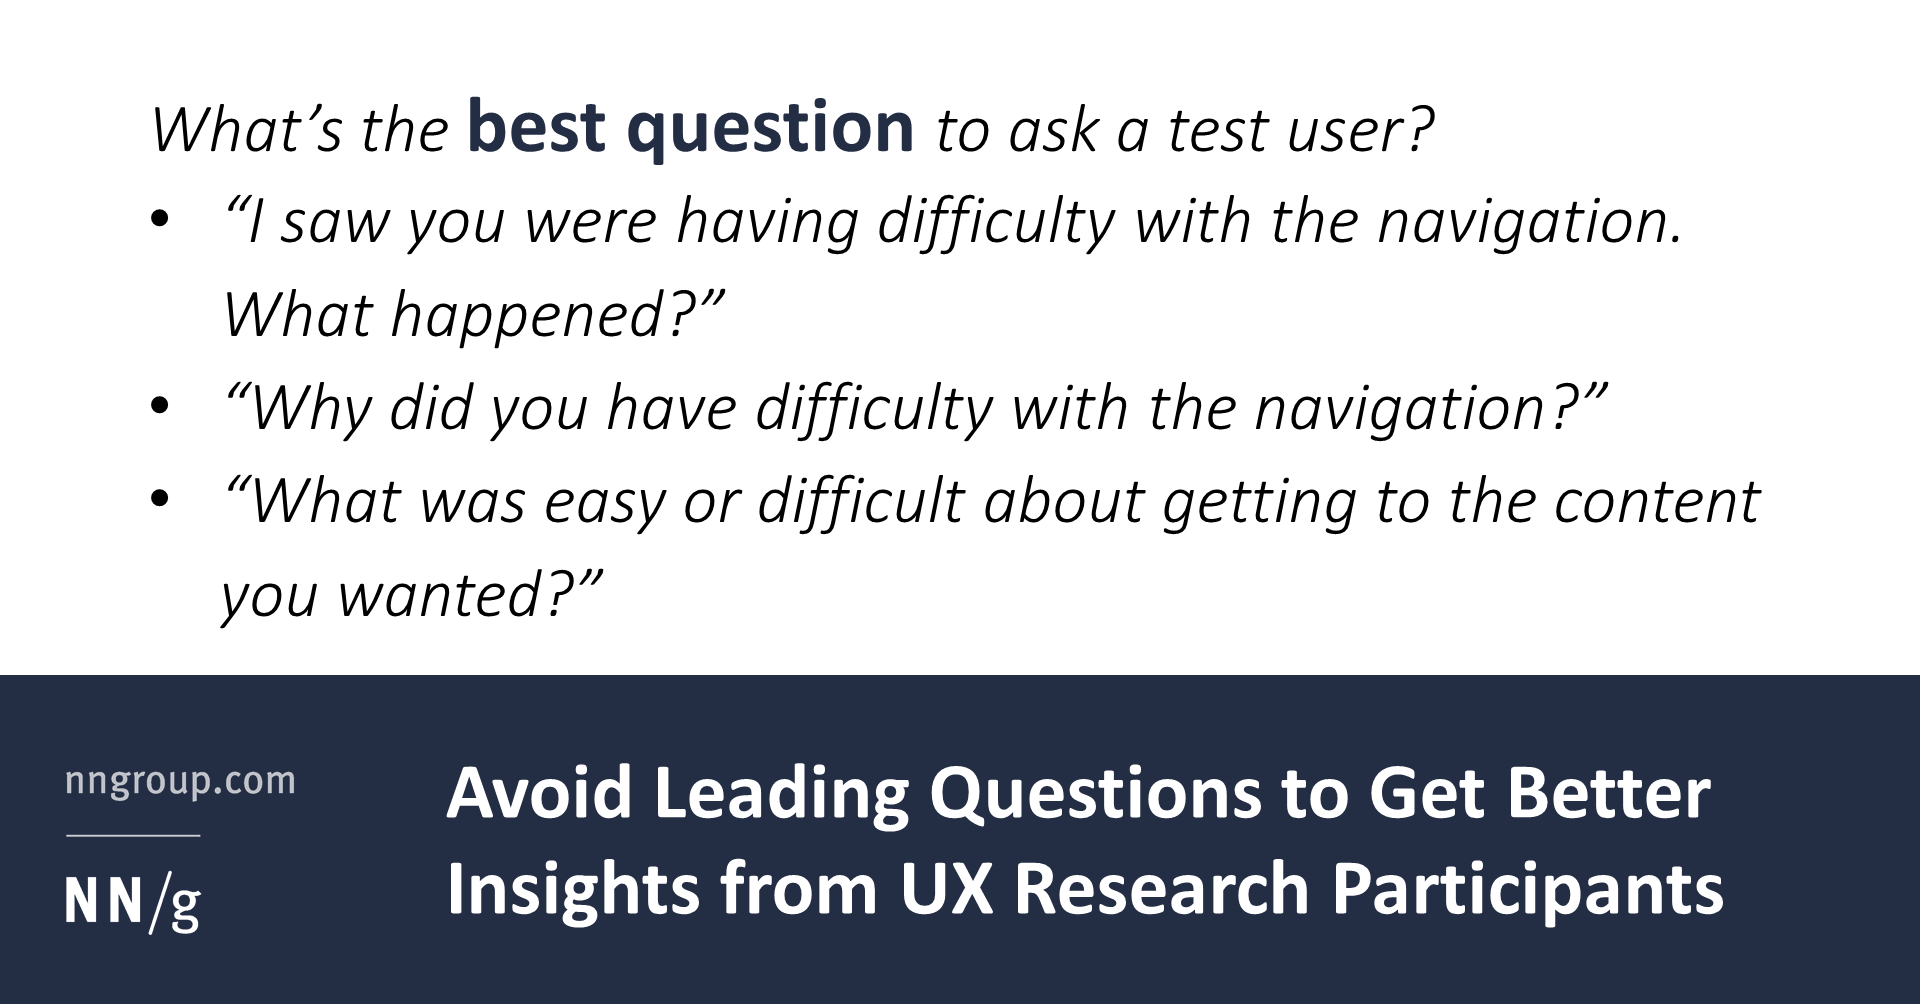 Avoid Leading Questions To Get Better Insights From Participants